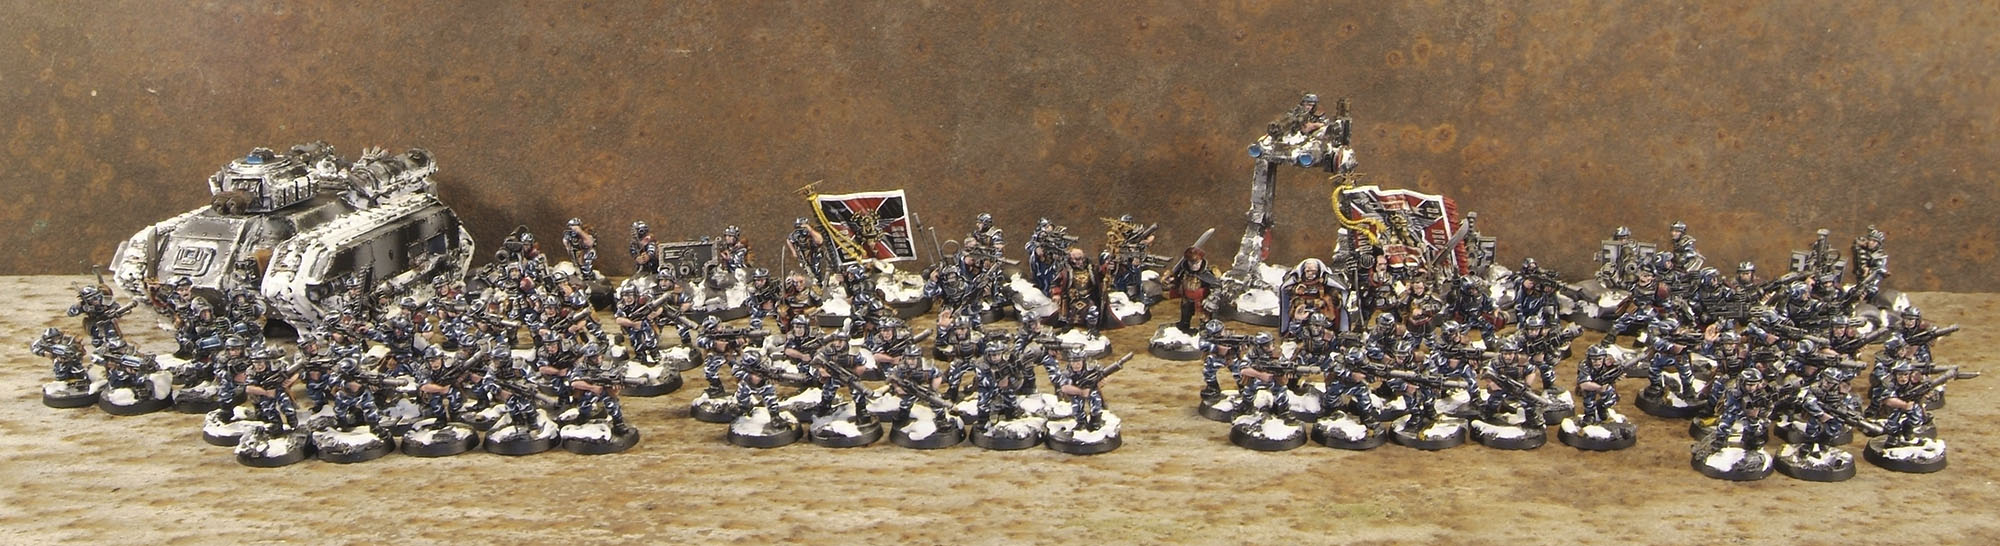 Imperial Guard Cadian Army